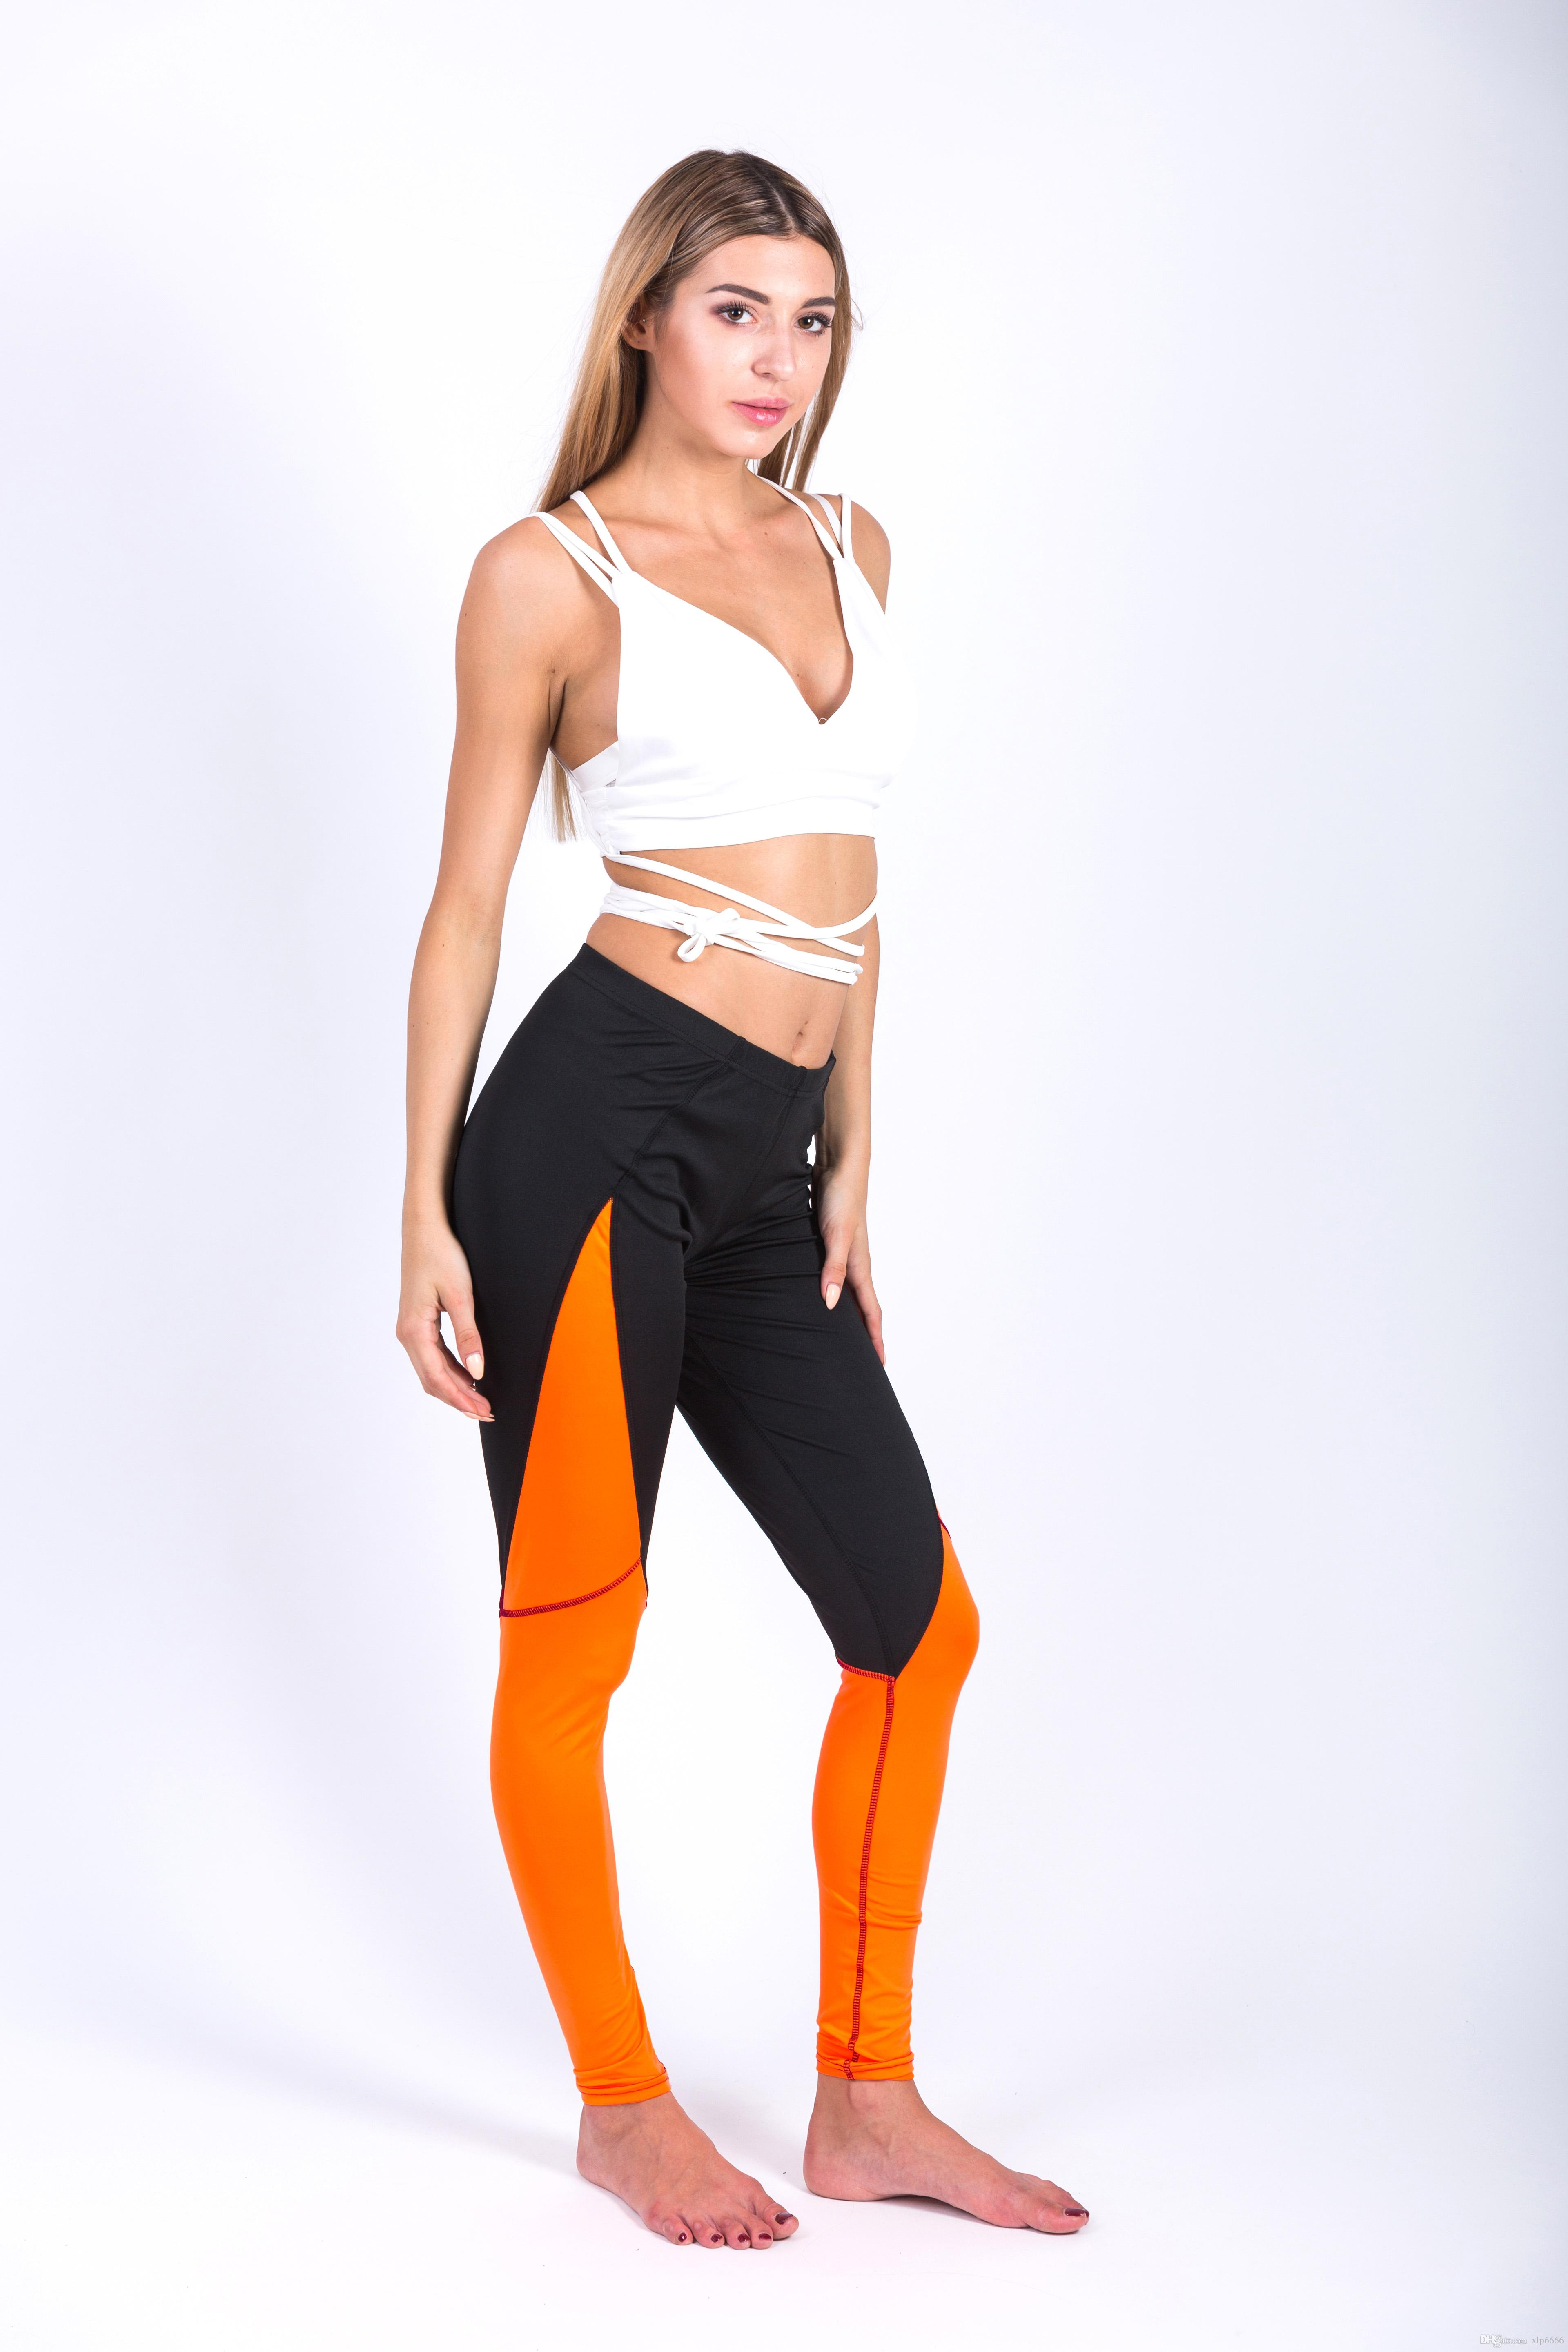 2018 Hot Style WomenS Stitching Together Sexy Yoga Body Speed Dry Sports Pants Outdoor Leggings Girl From Xlp6666 1002